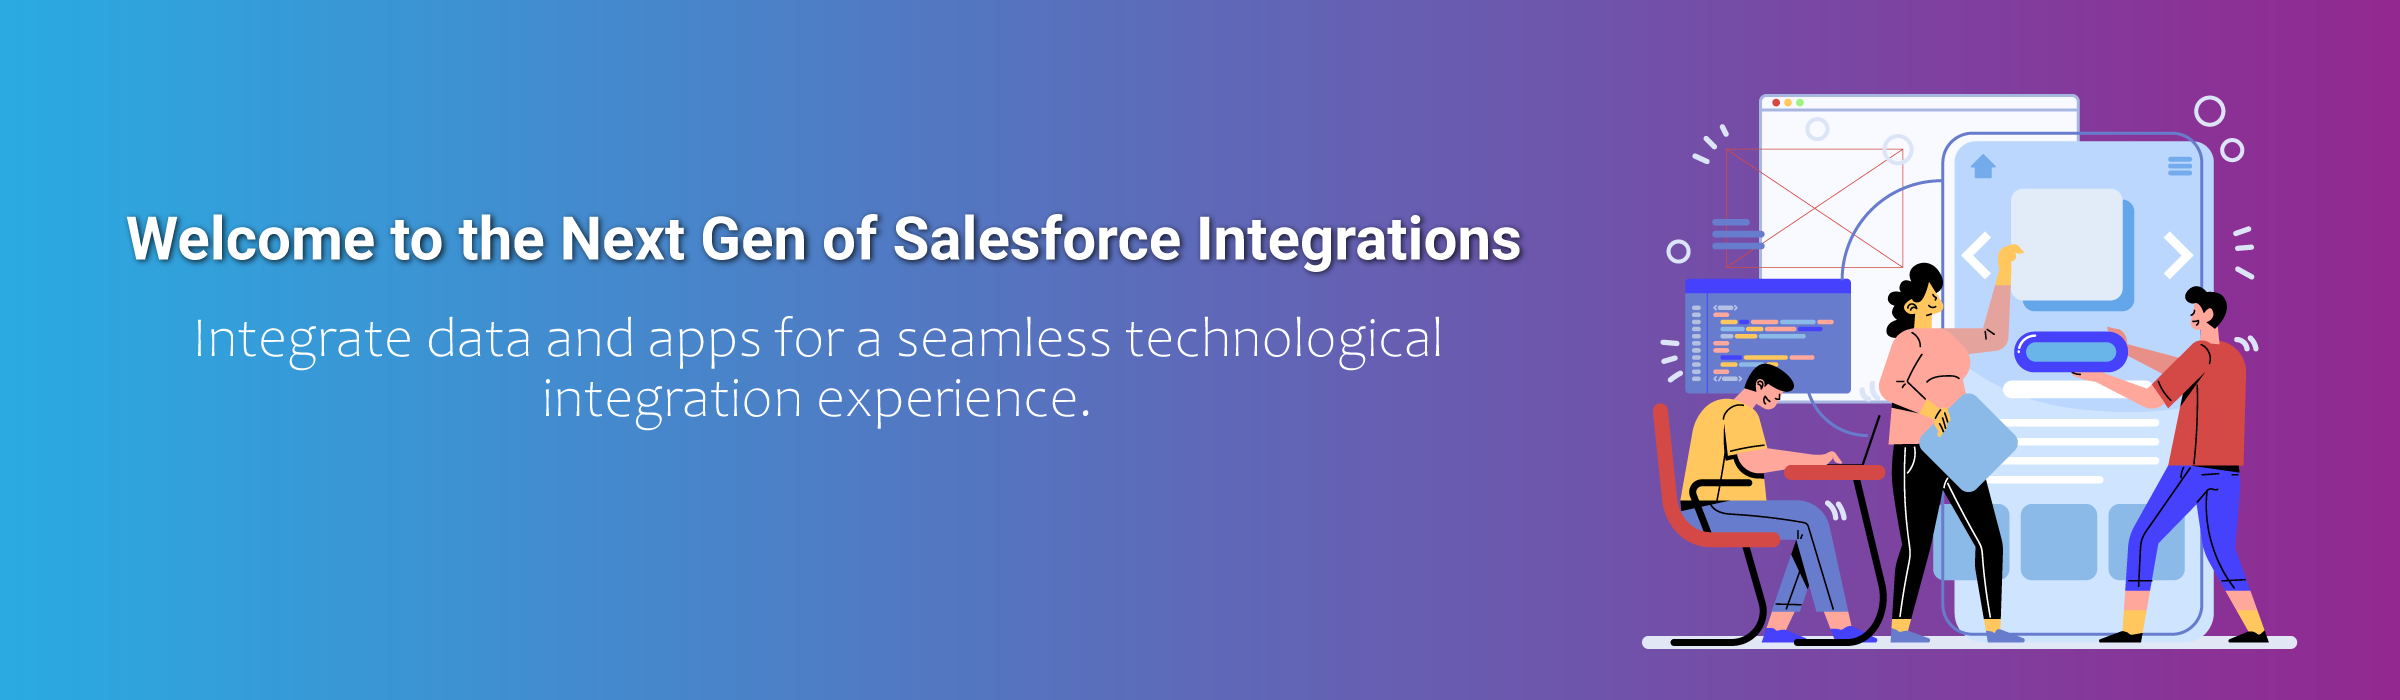 Integrate-data-and-apps-for-a-seamless-technological-integration-experience.